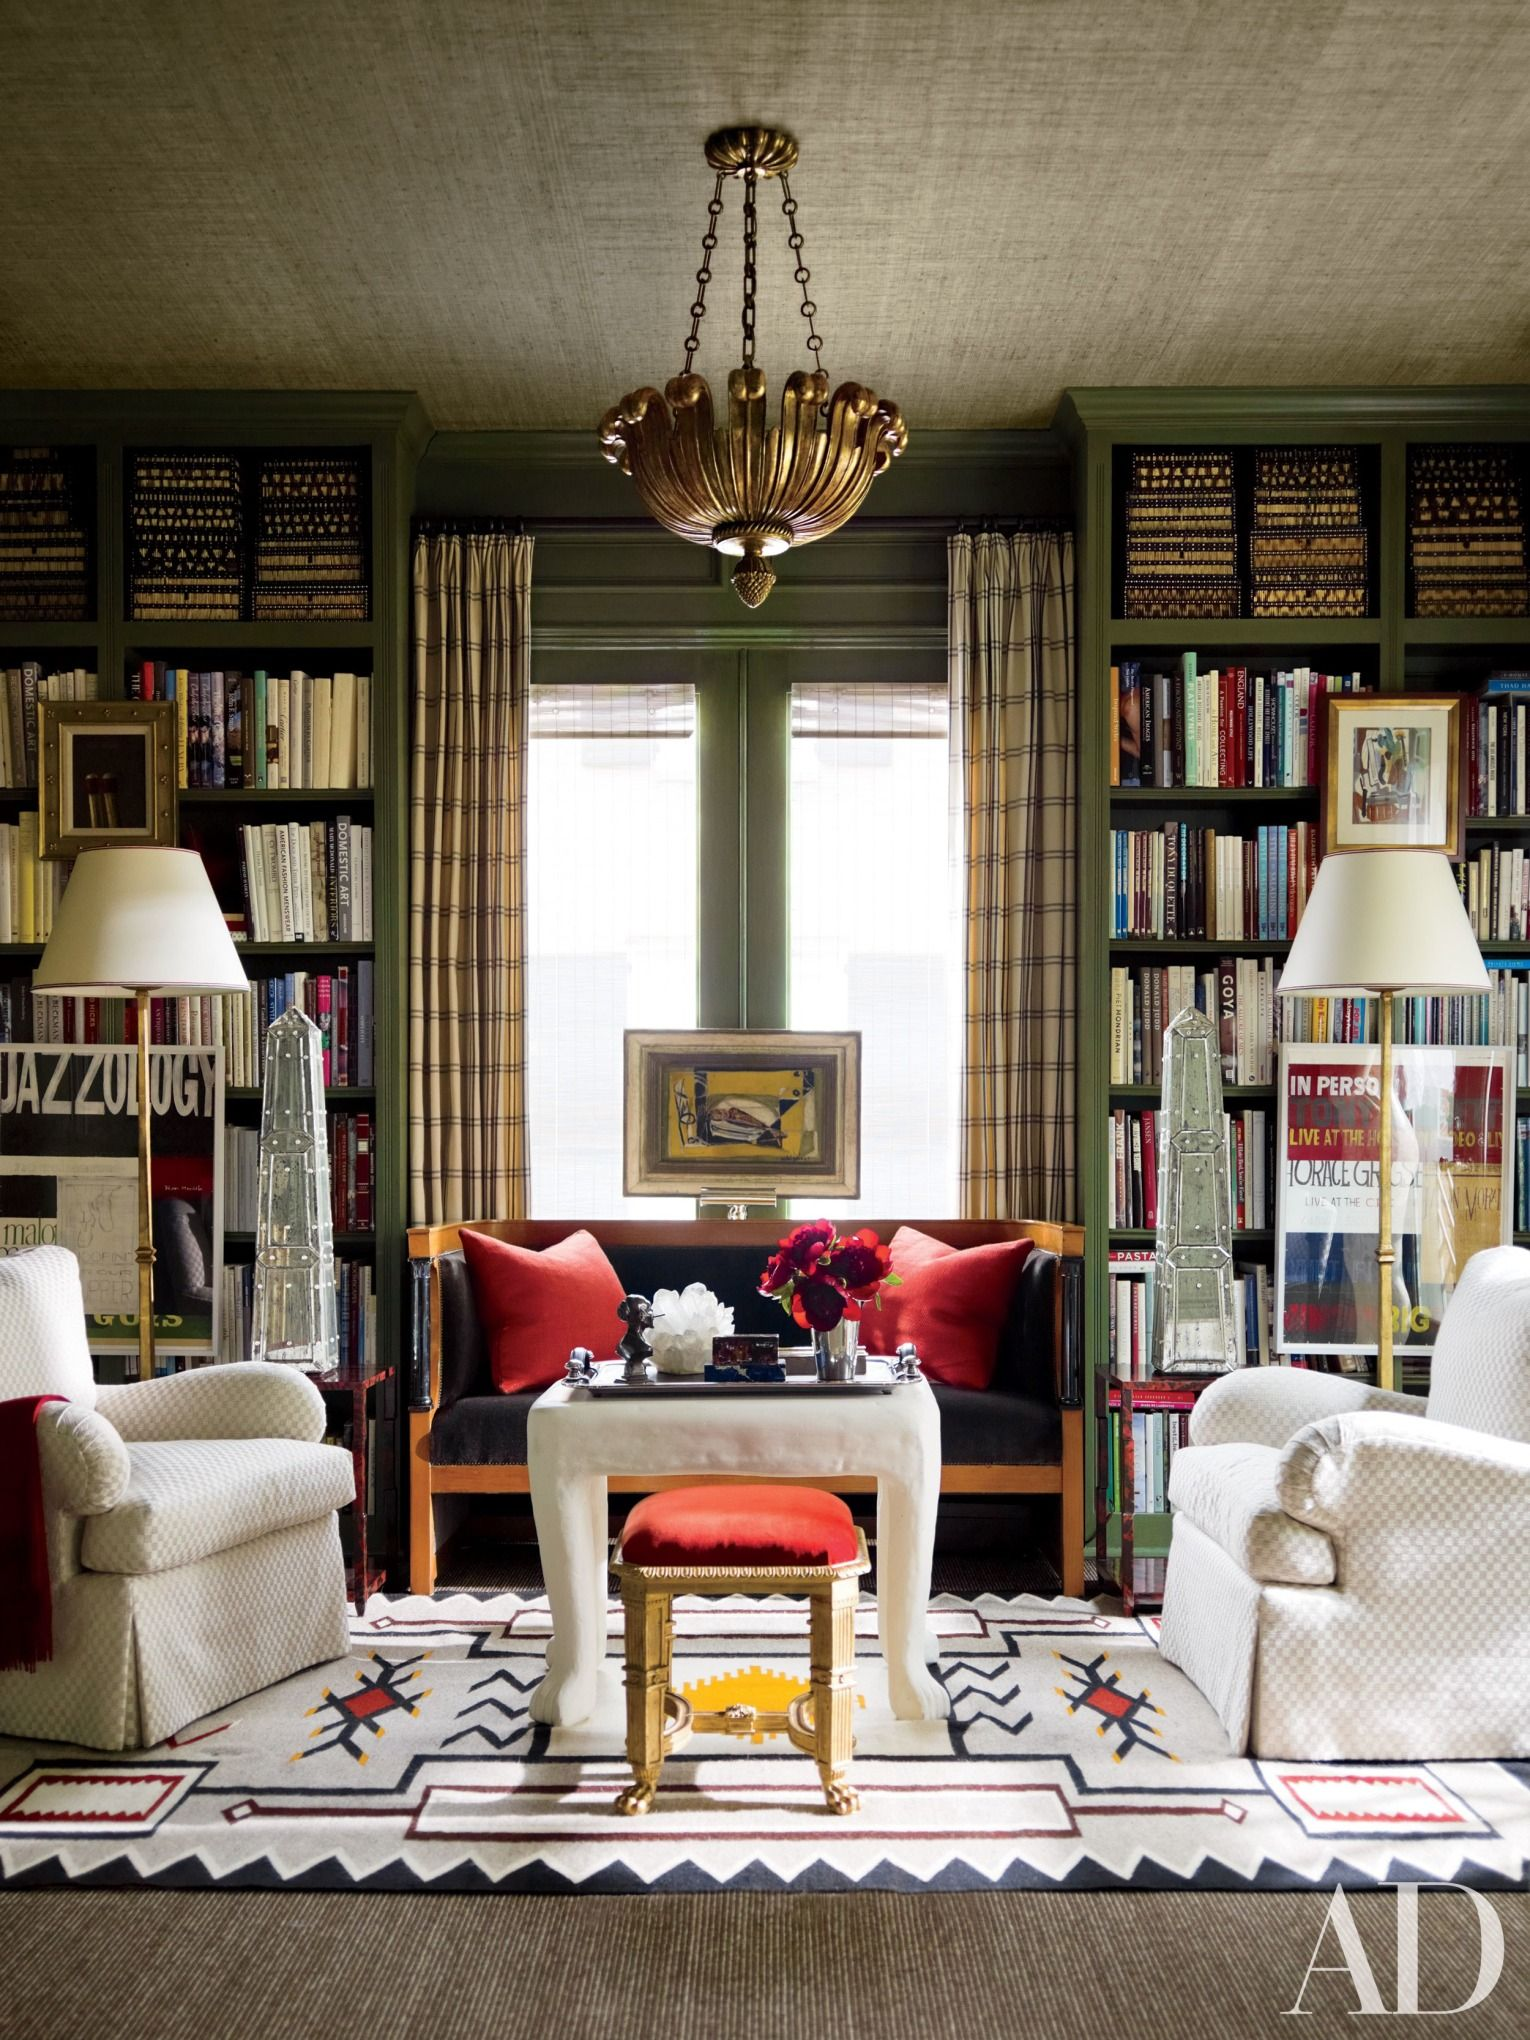 Home Library Design: These Home Libraries Are A Book Lover's Dream